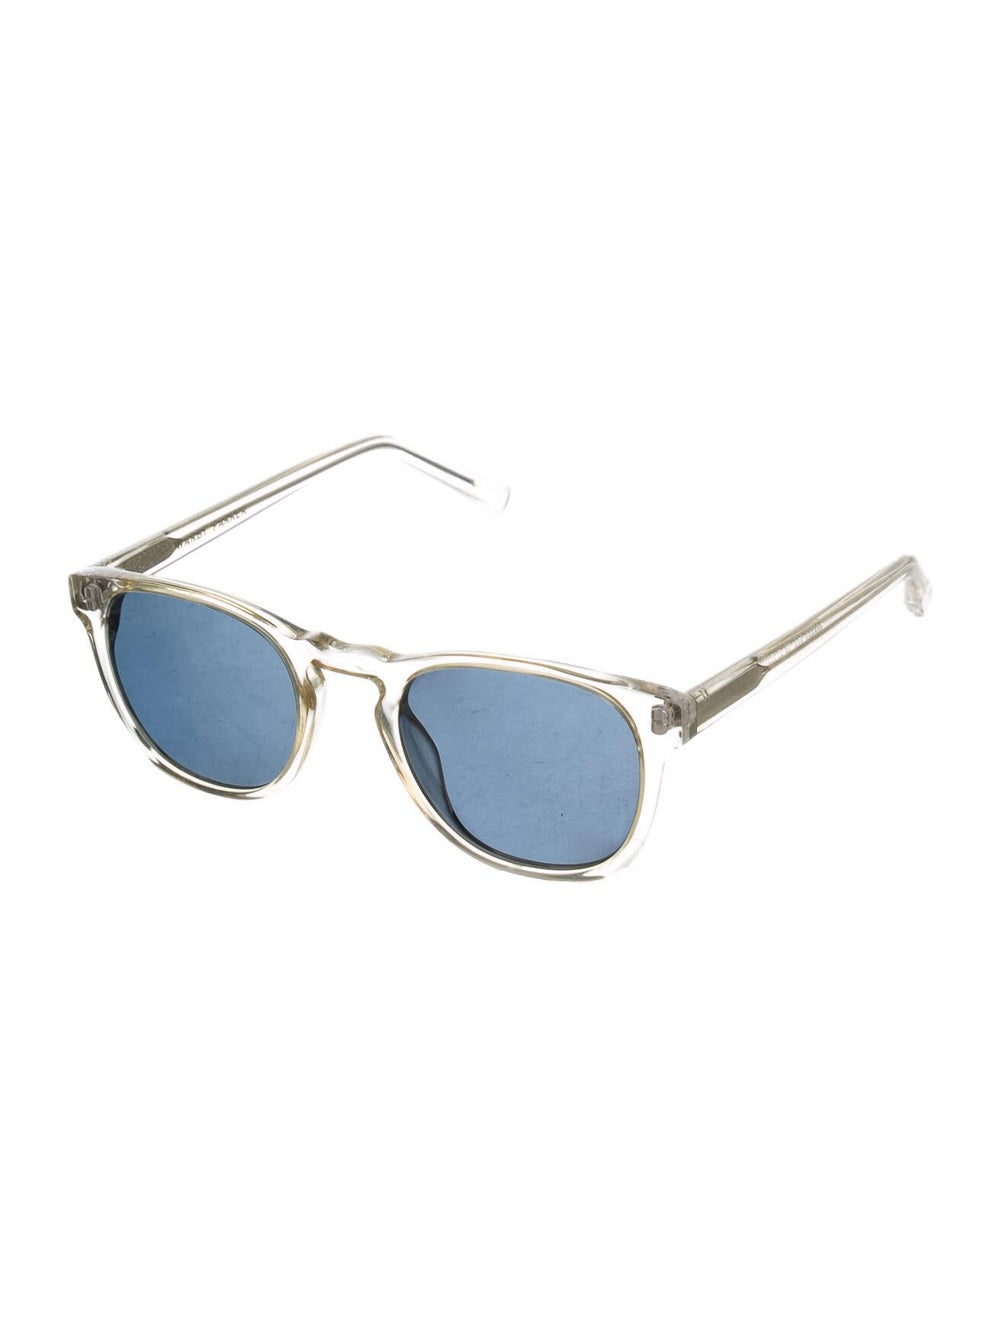 Warby Parker Topper Sunglasses Clear - image 2